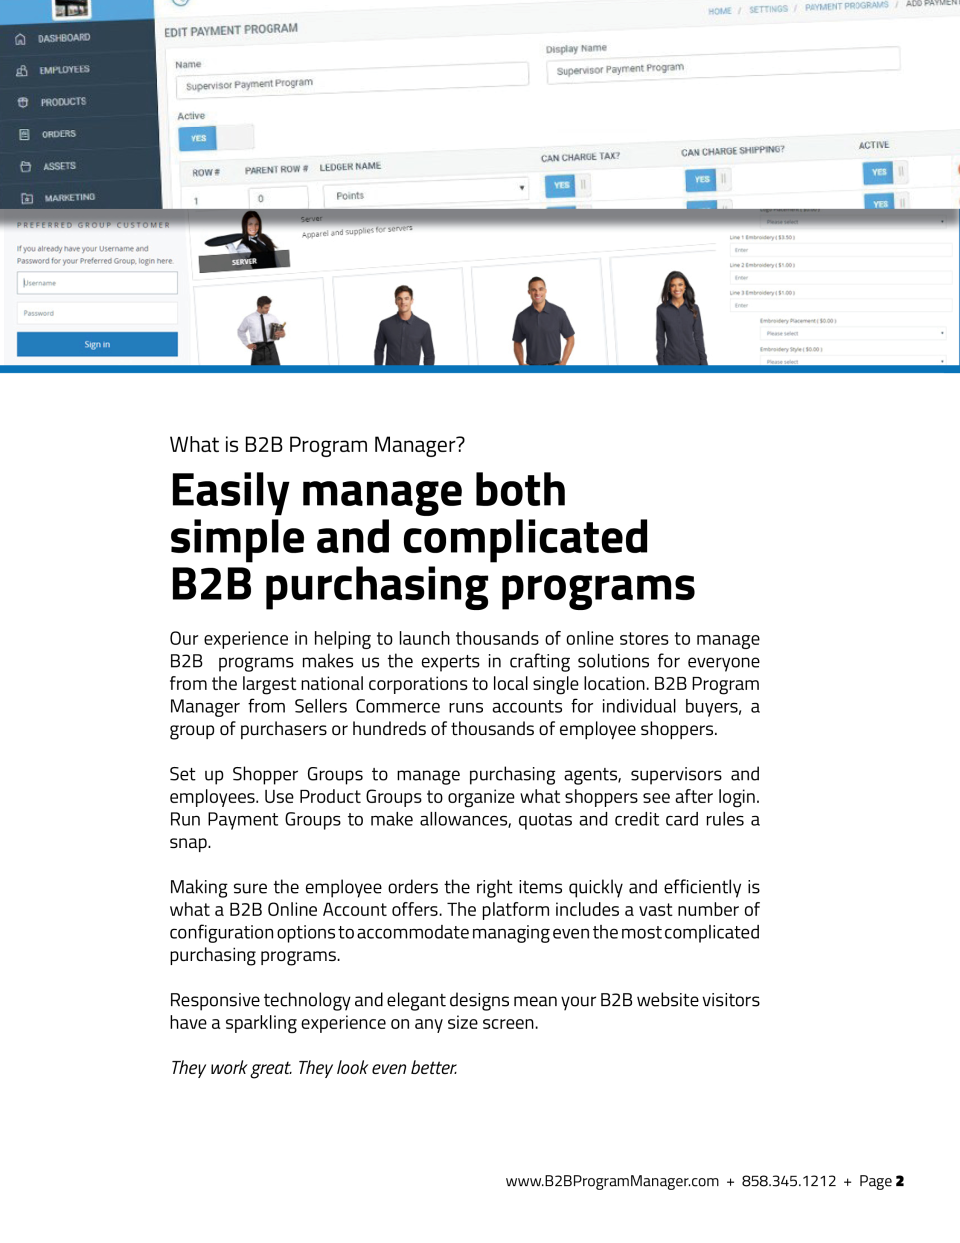 B2B Program Manager-screenshot-0